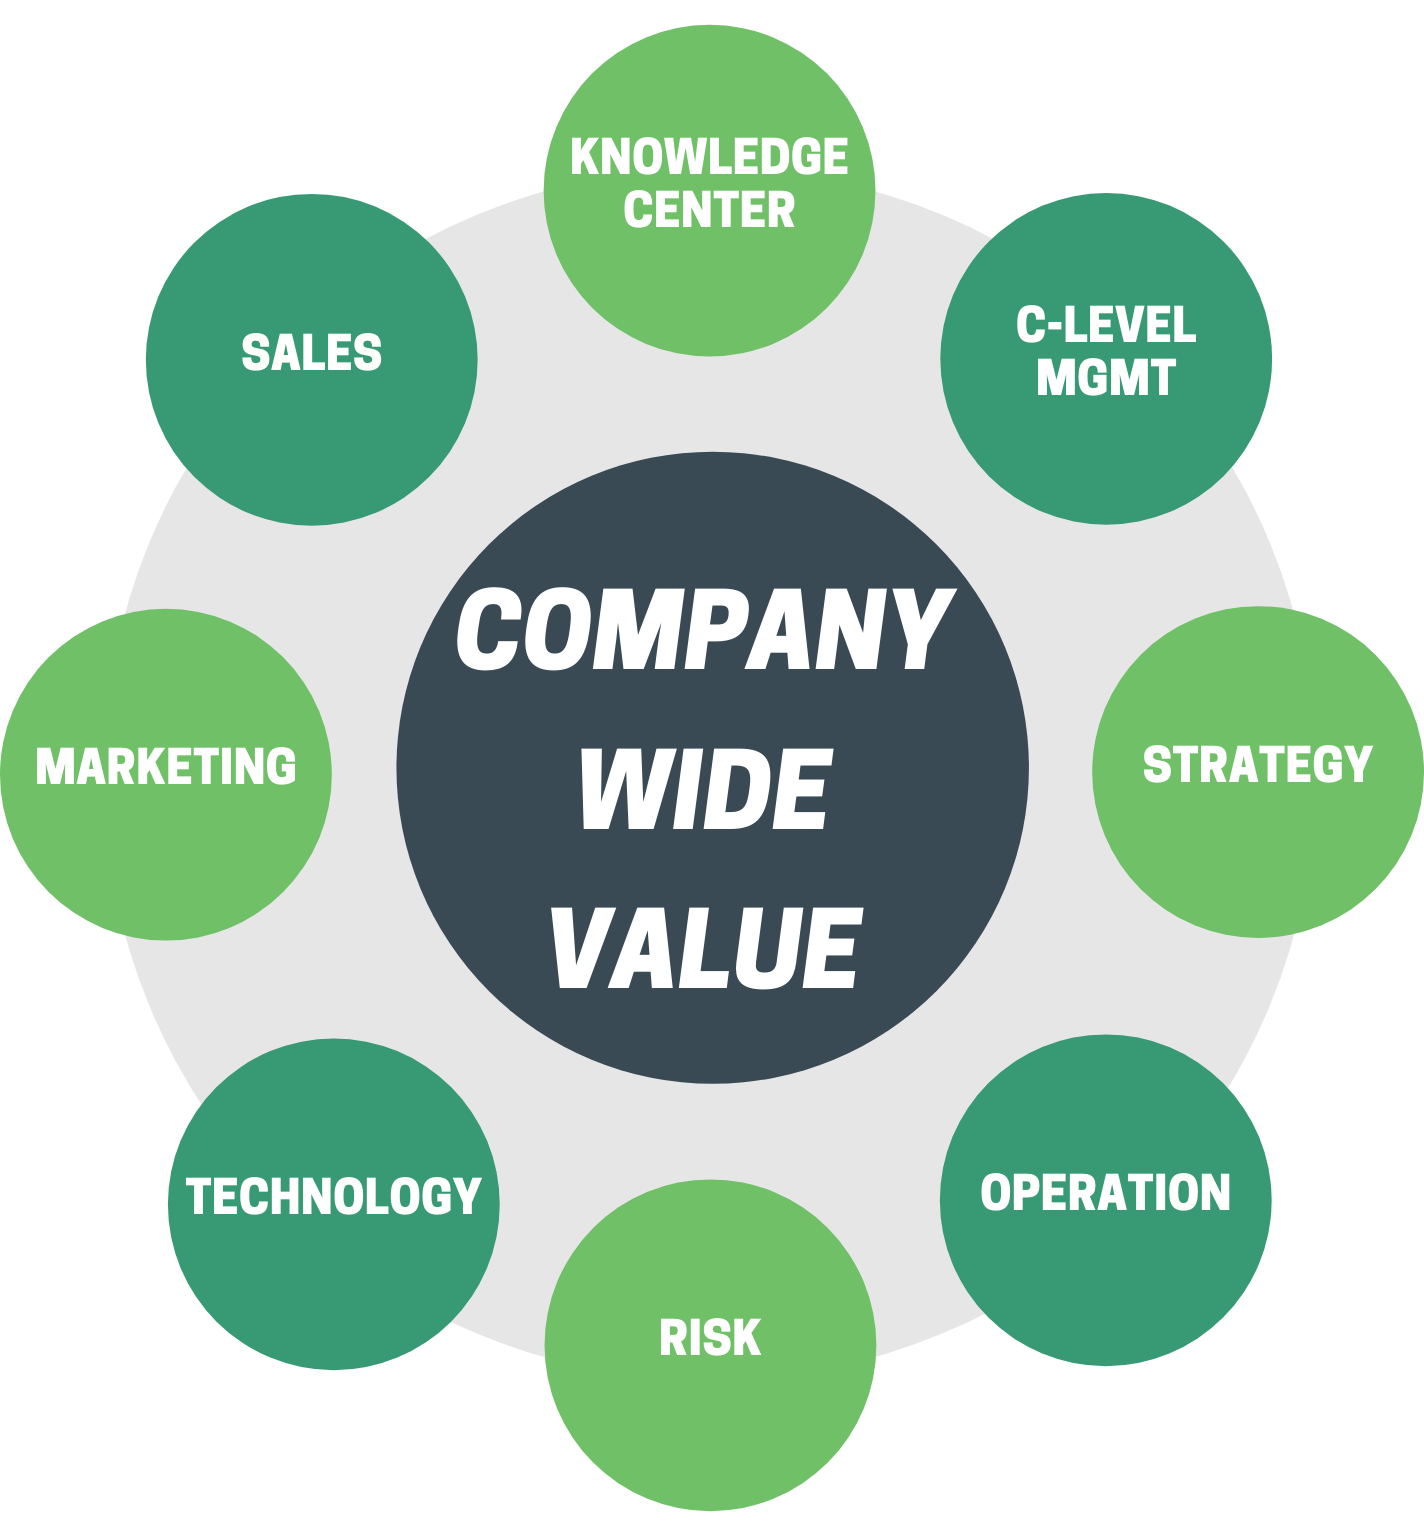 Company-wide Value Wheel